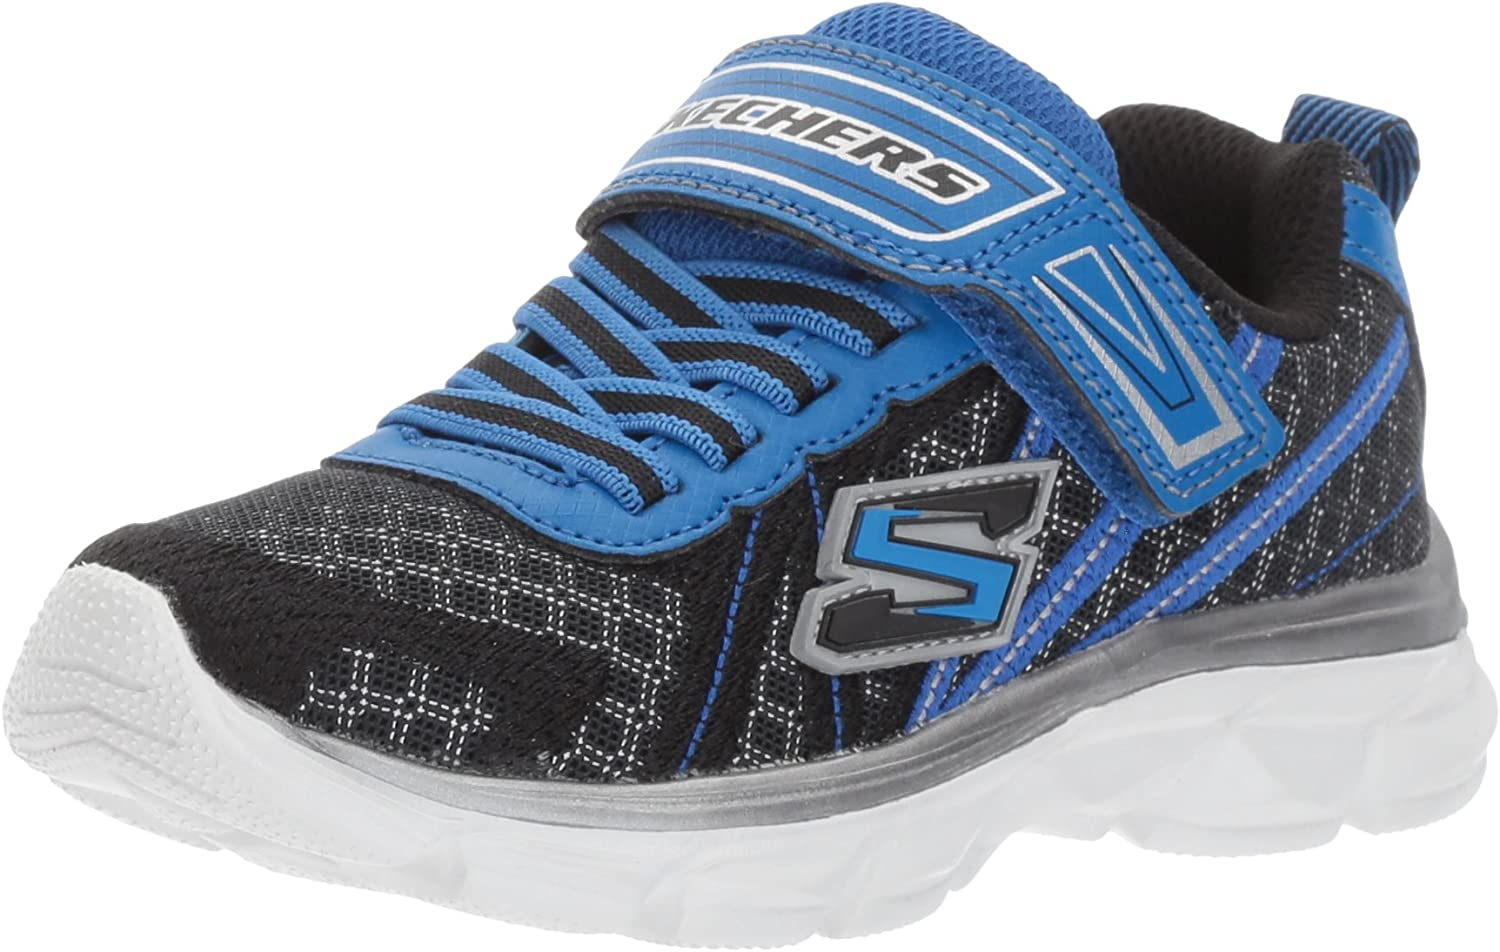 Skechers Kids Boys' Advance-Hyper Tread Turnschuhe, schwarz ROYAL, 13 M US Little Kid